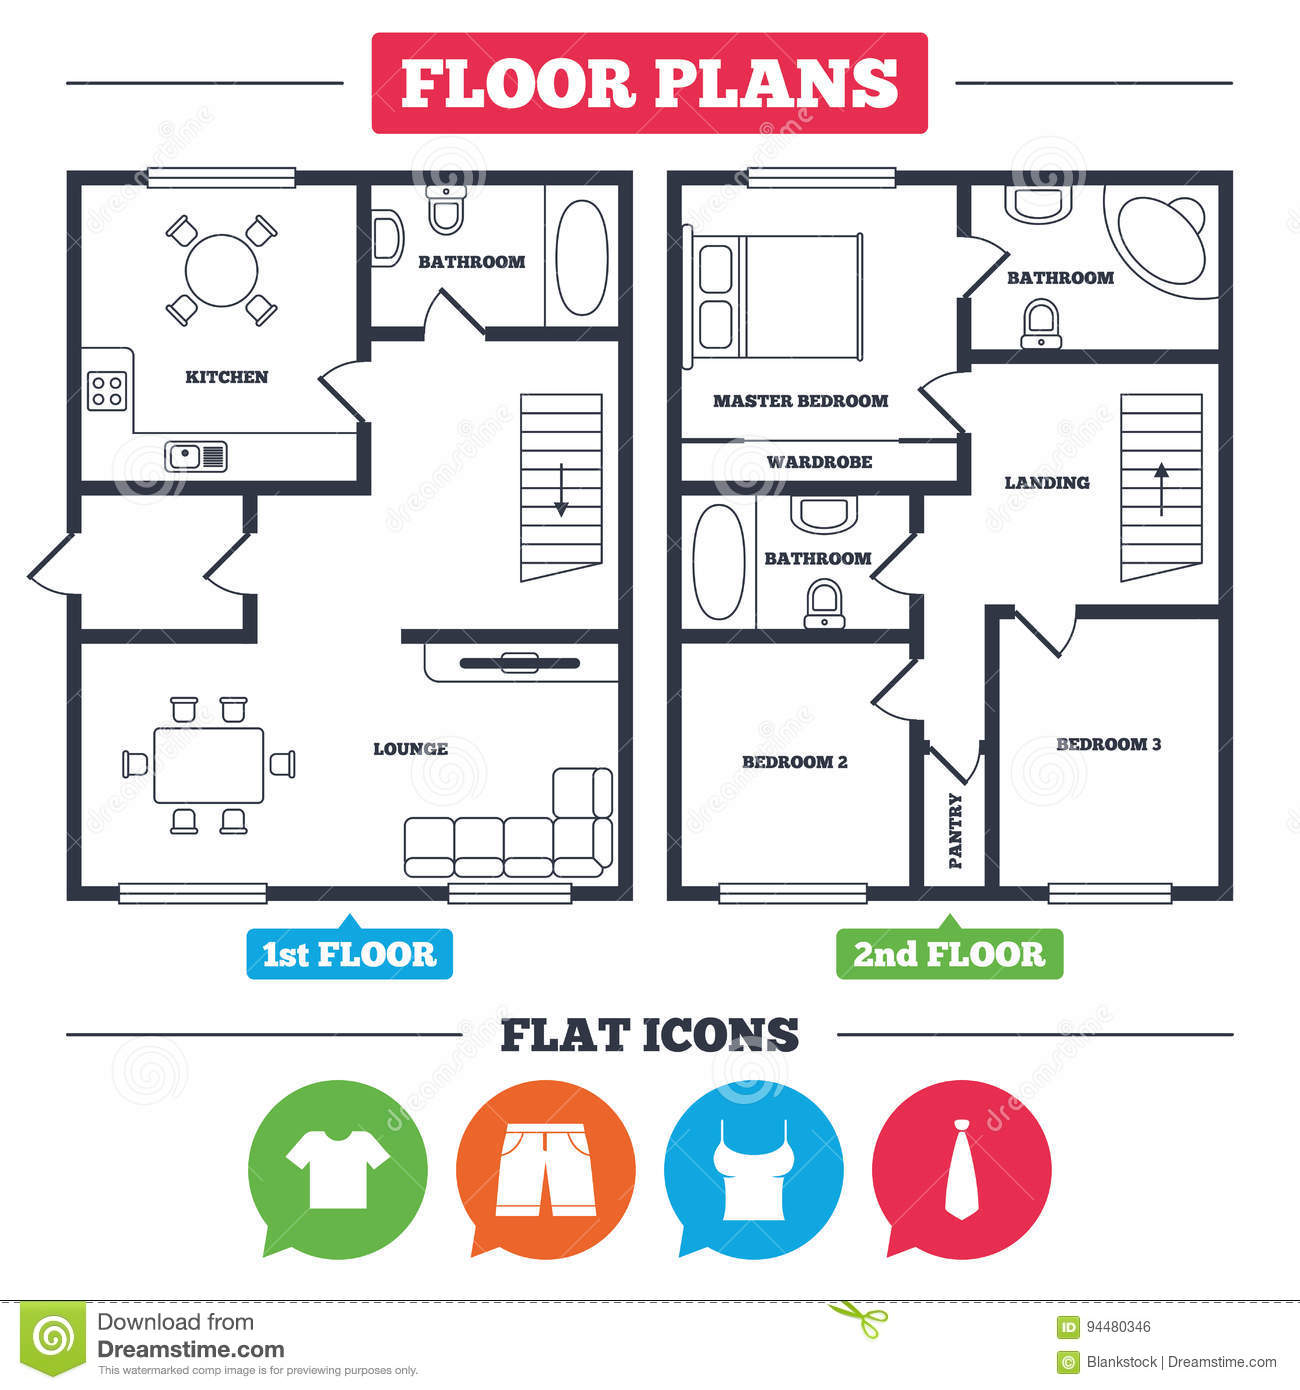 Architecture plan with furniture house floor plan clothes icons t shirt and bermuda shorts signs business tie symbol kitchen lounge and bathroom